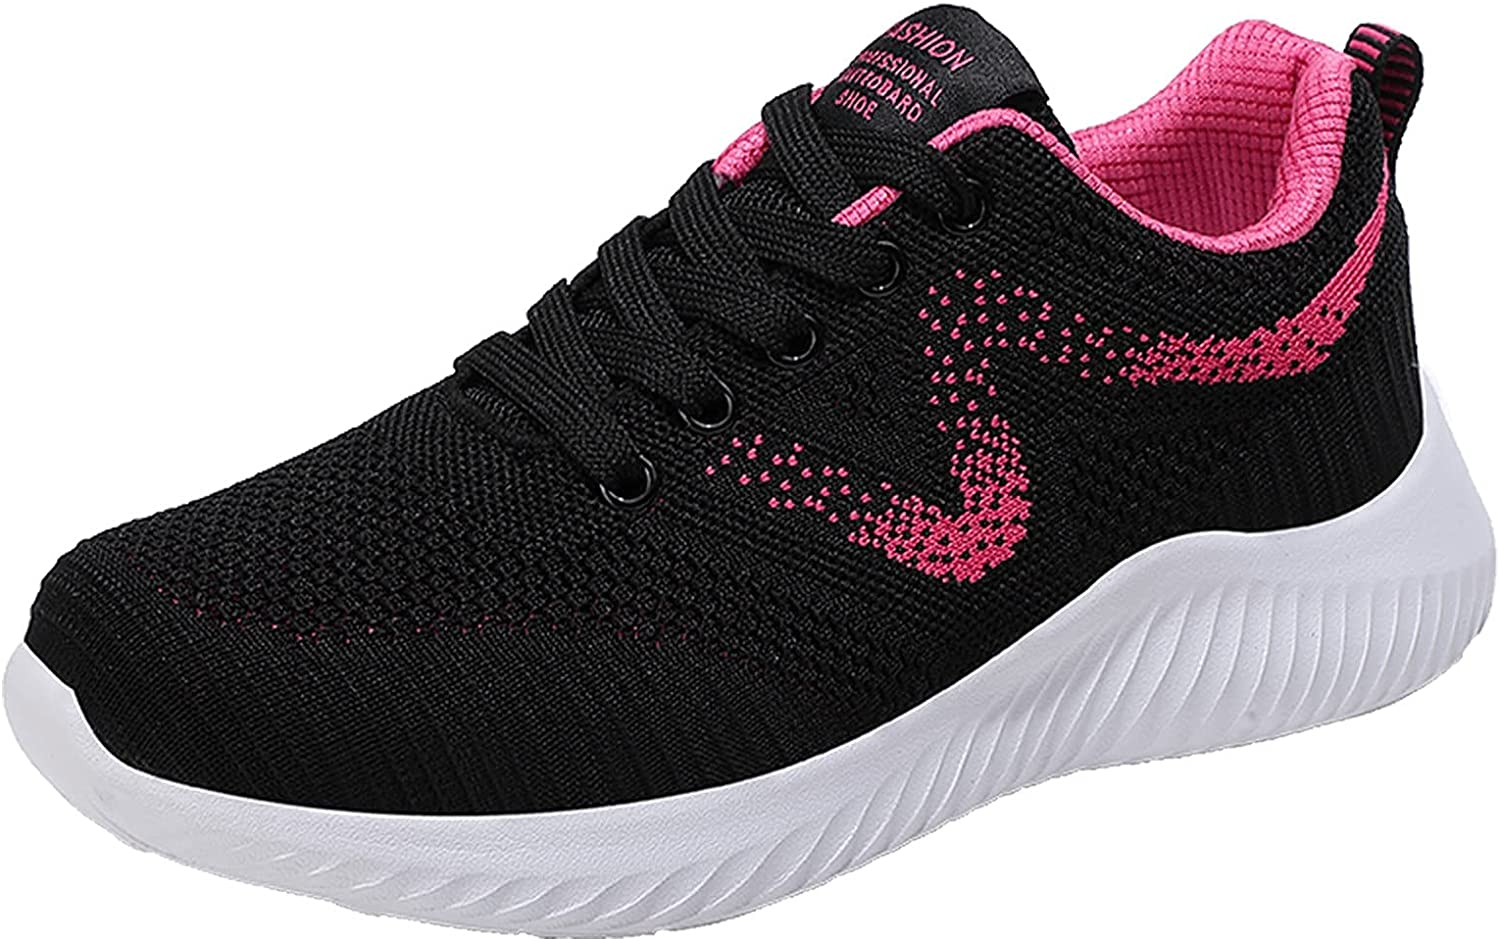 Women Fresno Mall Running Shoes Men Casual Breathable Walking At Sport Animer and price revision